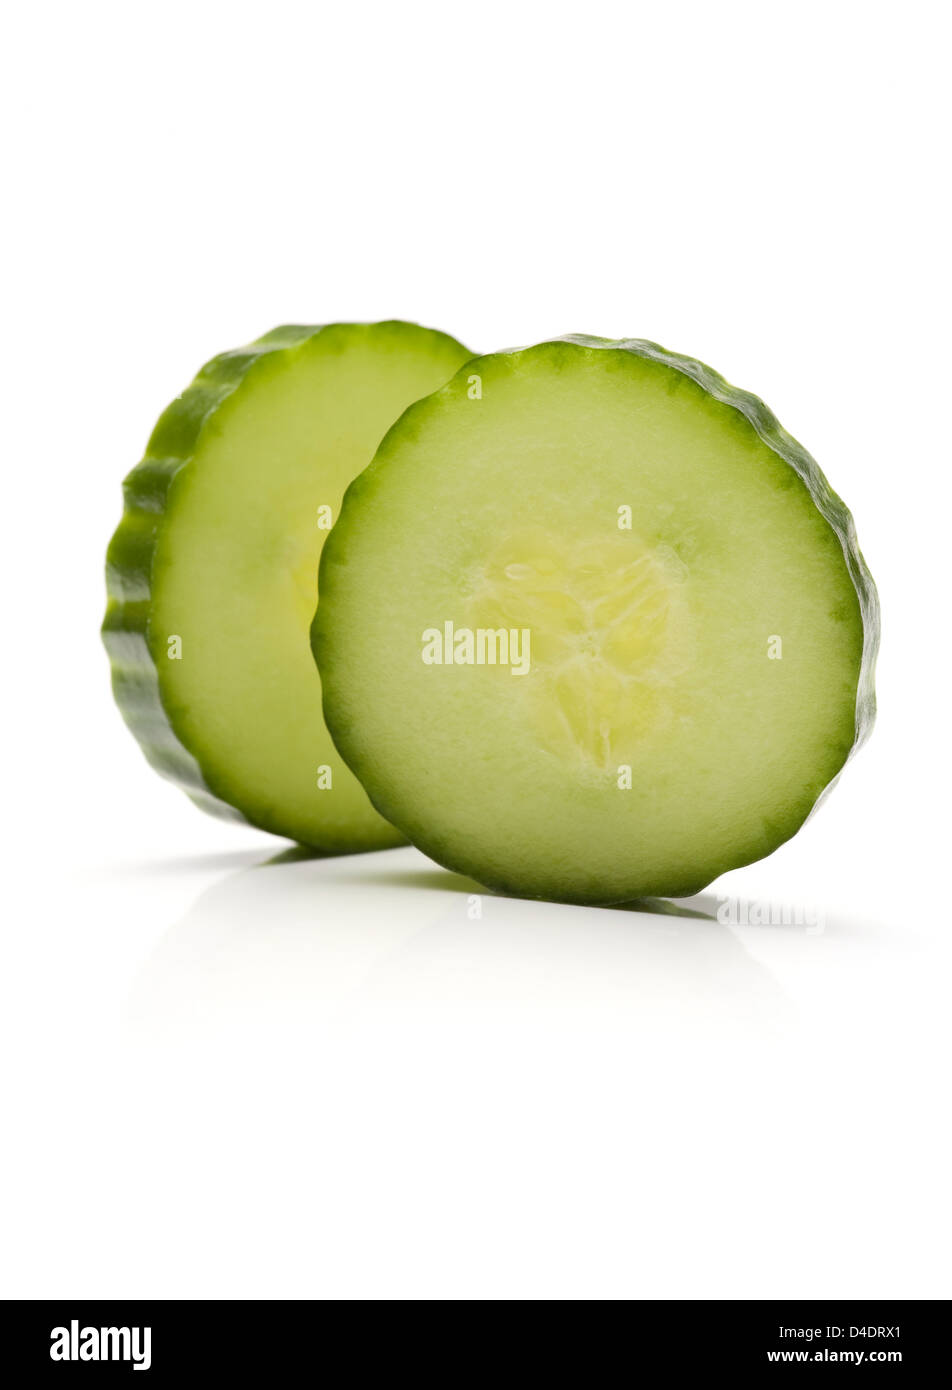 Two cucumber slices isolated on white background - Stock Image